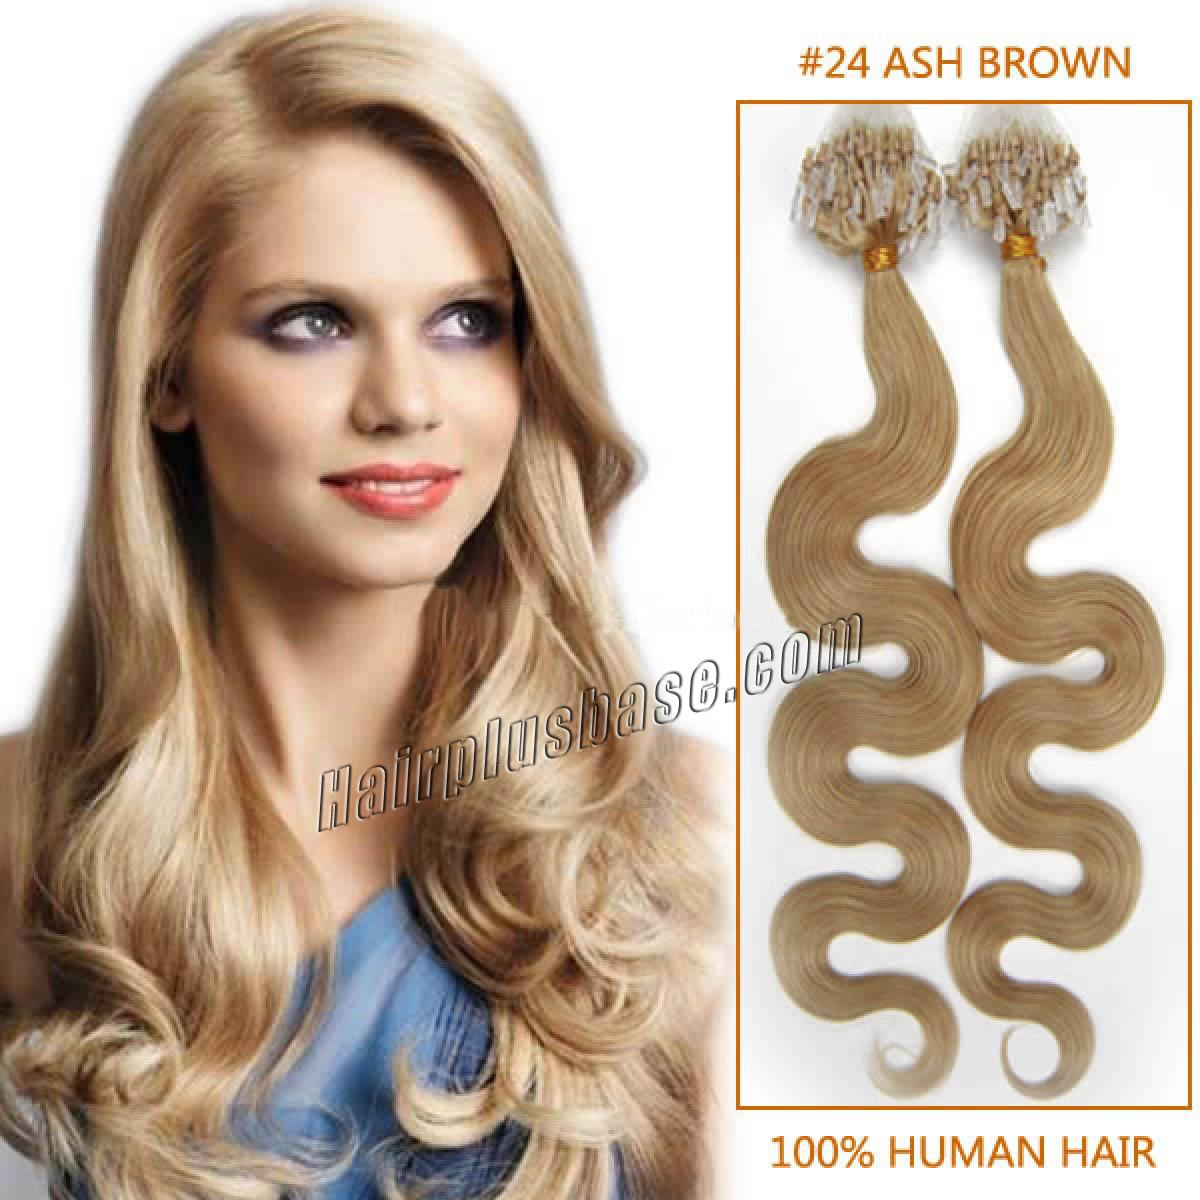 Inch 24 ash blonde wavy micro loop human hair extensions 100s 20 inch 24 ash blonde wavy micro loop human hair extensions 100s pmusecretfo Image collections